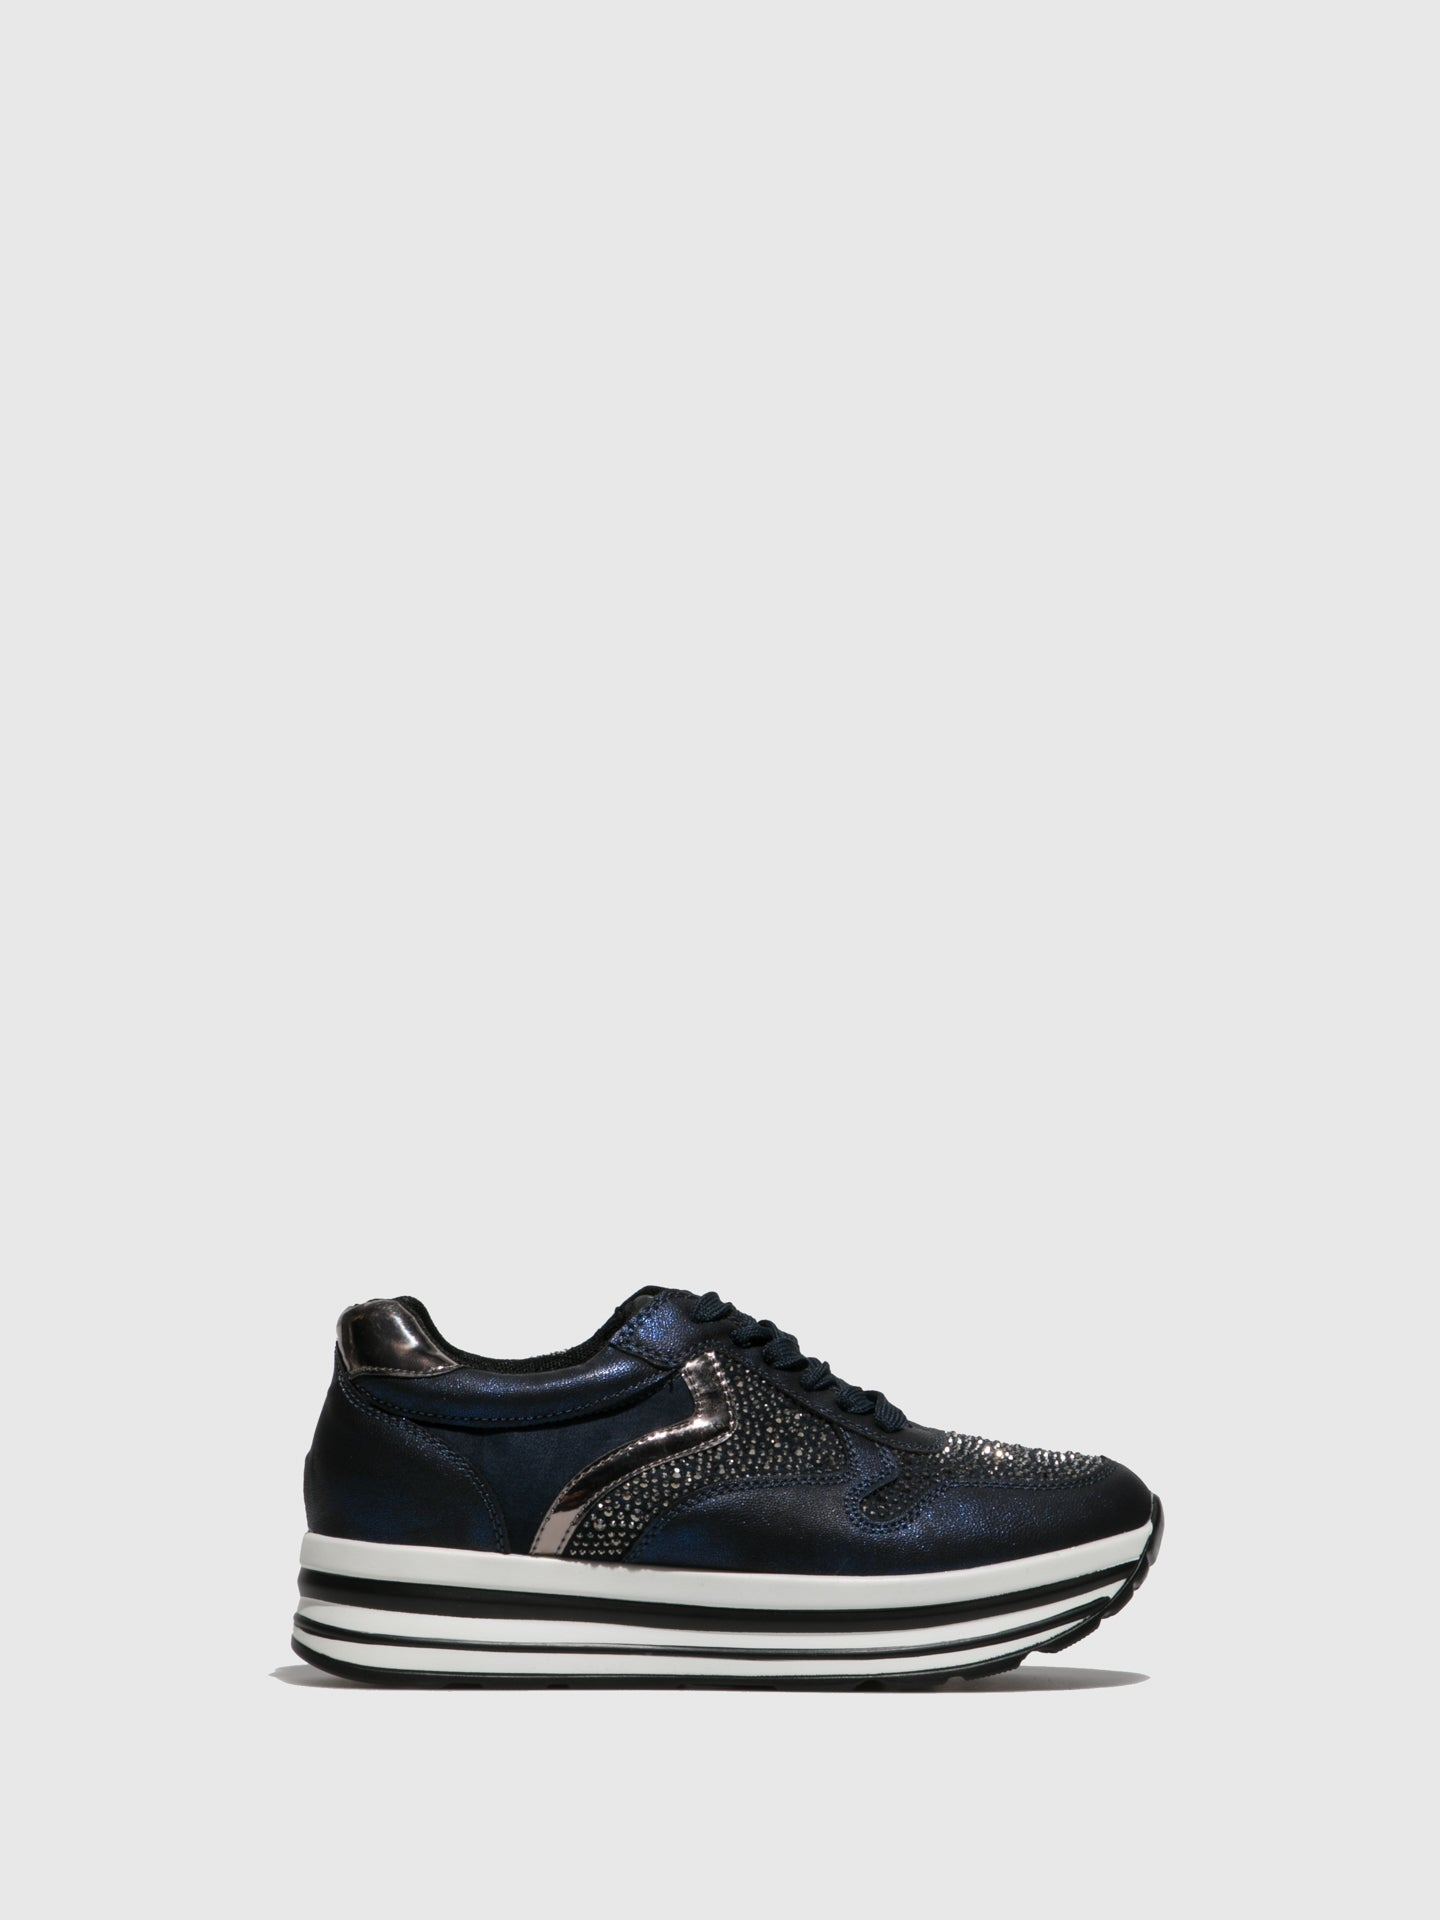 FRANCESCO MILANO Navy Lace-up Trainers